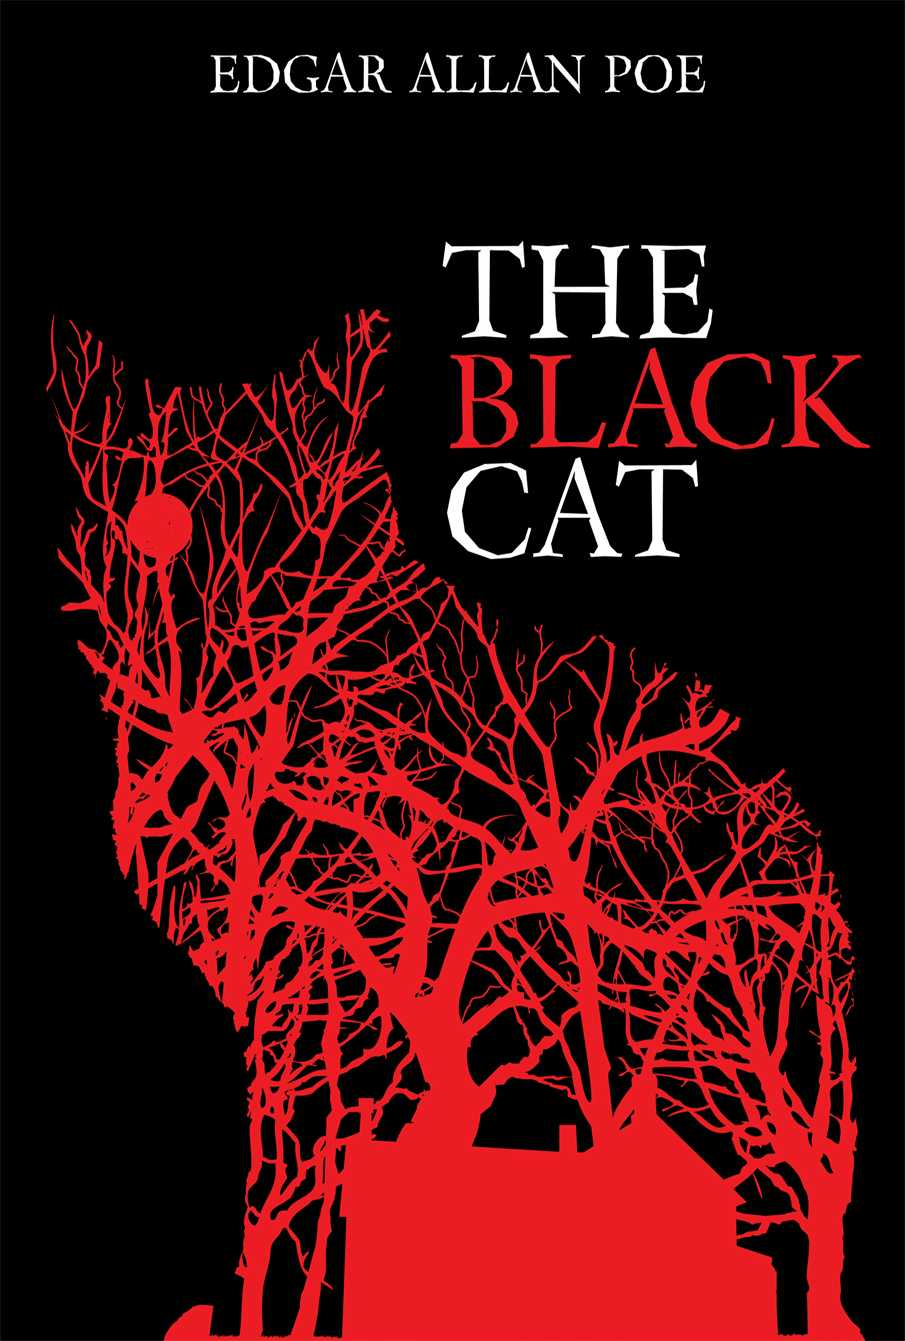 an analysis of the symbols used in the black cat by edgar allan poe We will write a custom essay sample on the black cat by edgar allan poe – suspense, irony, symbolism specifically for you for only $1638 $139/page order now.